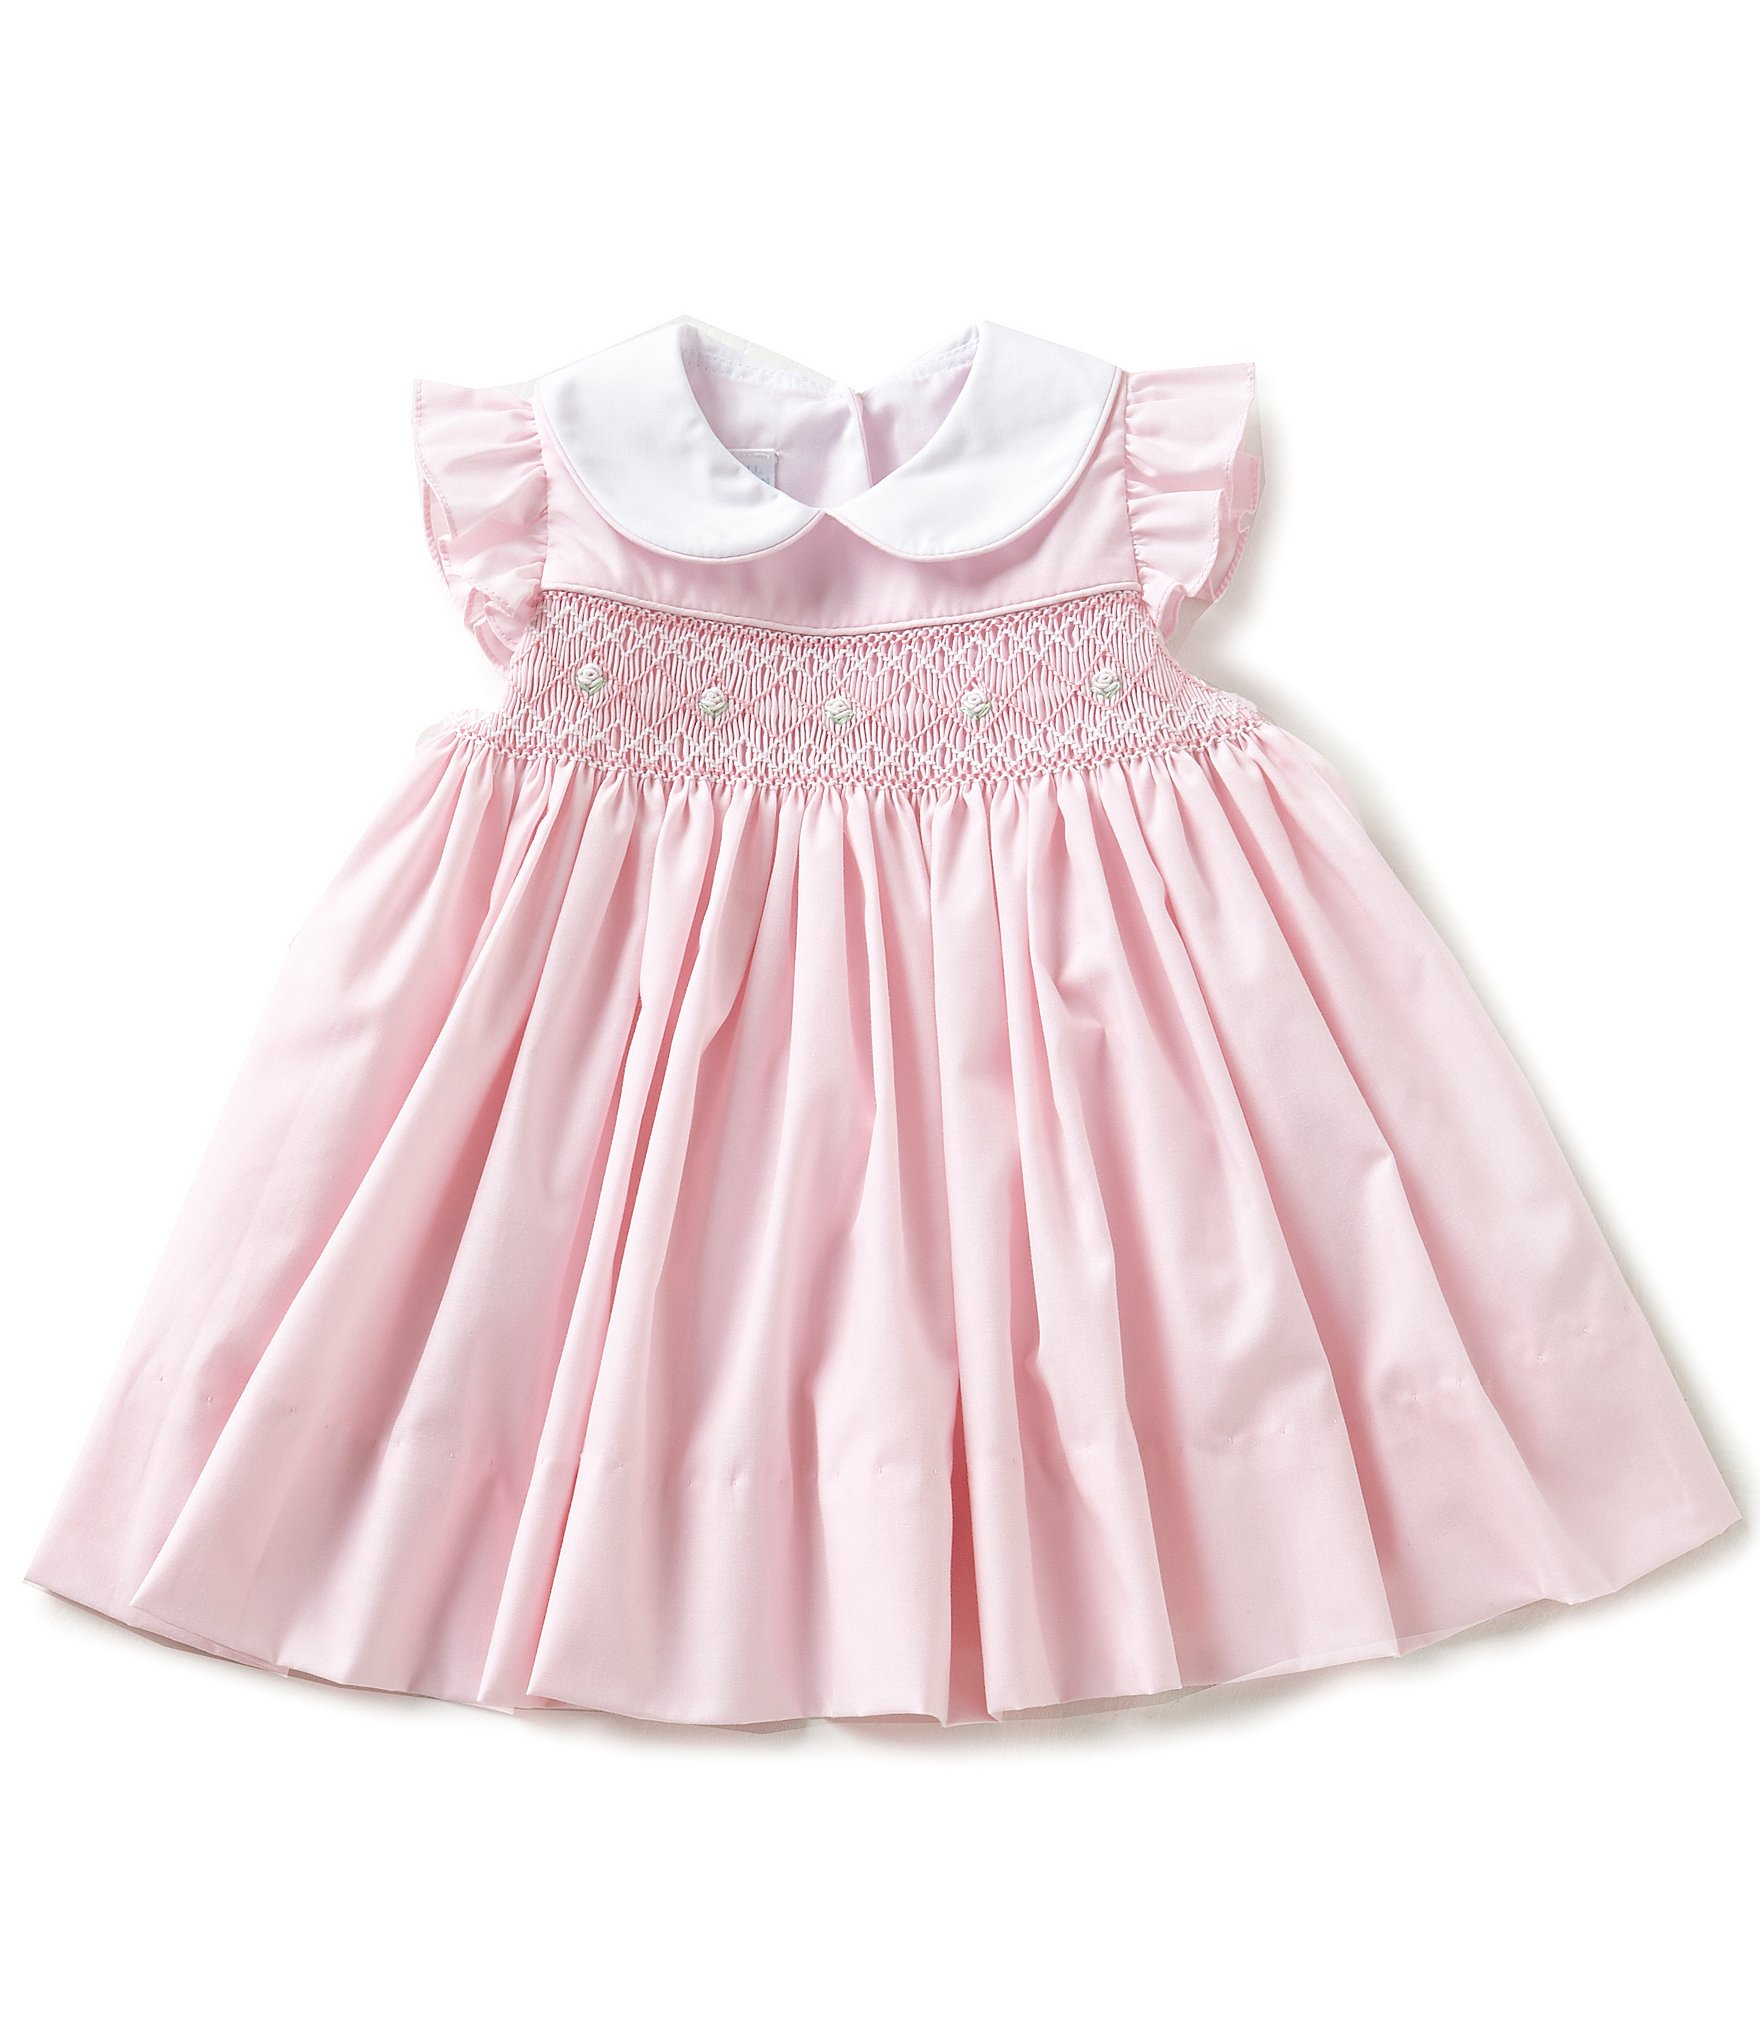 4a816b08b Formal Baby Dresses - Nini Dress